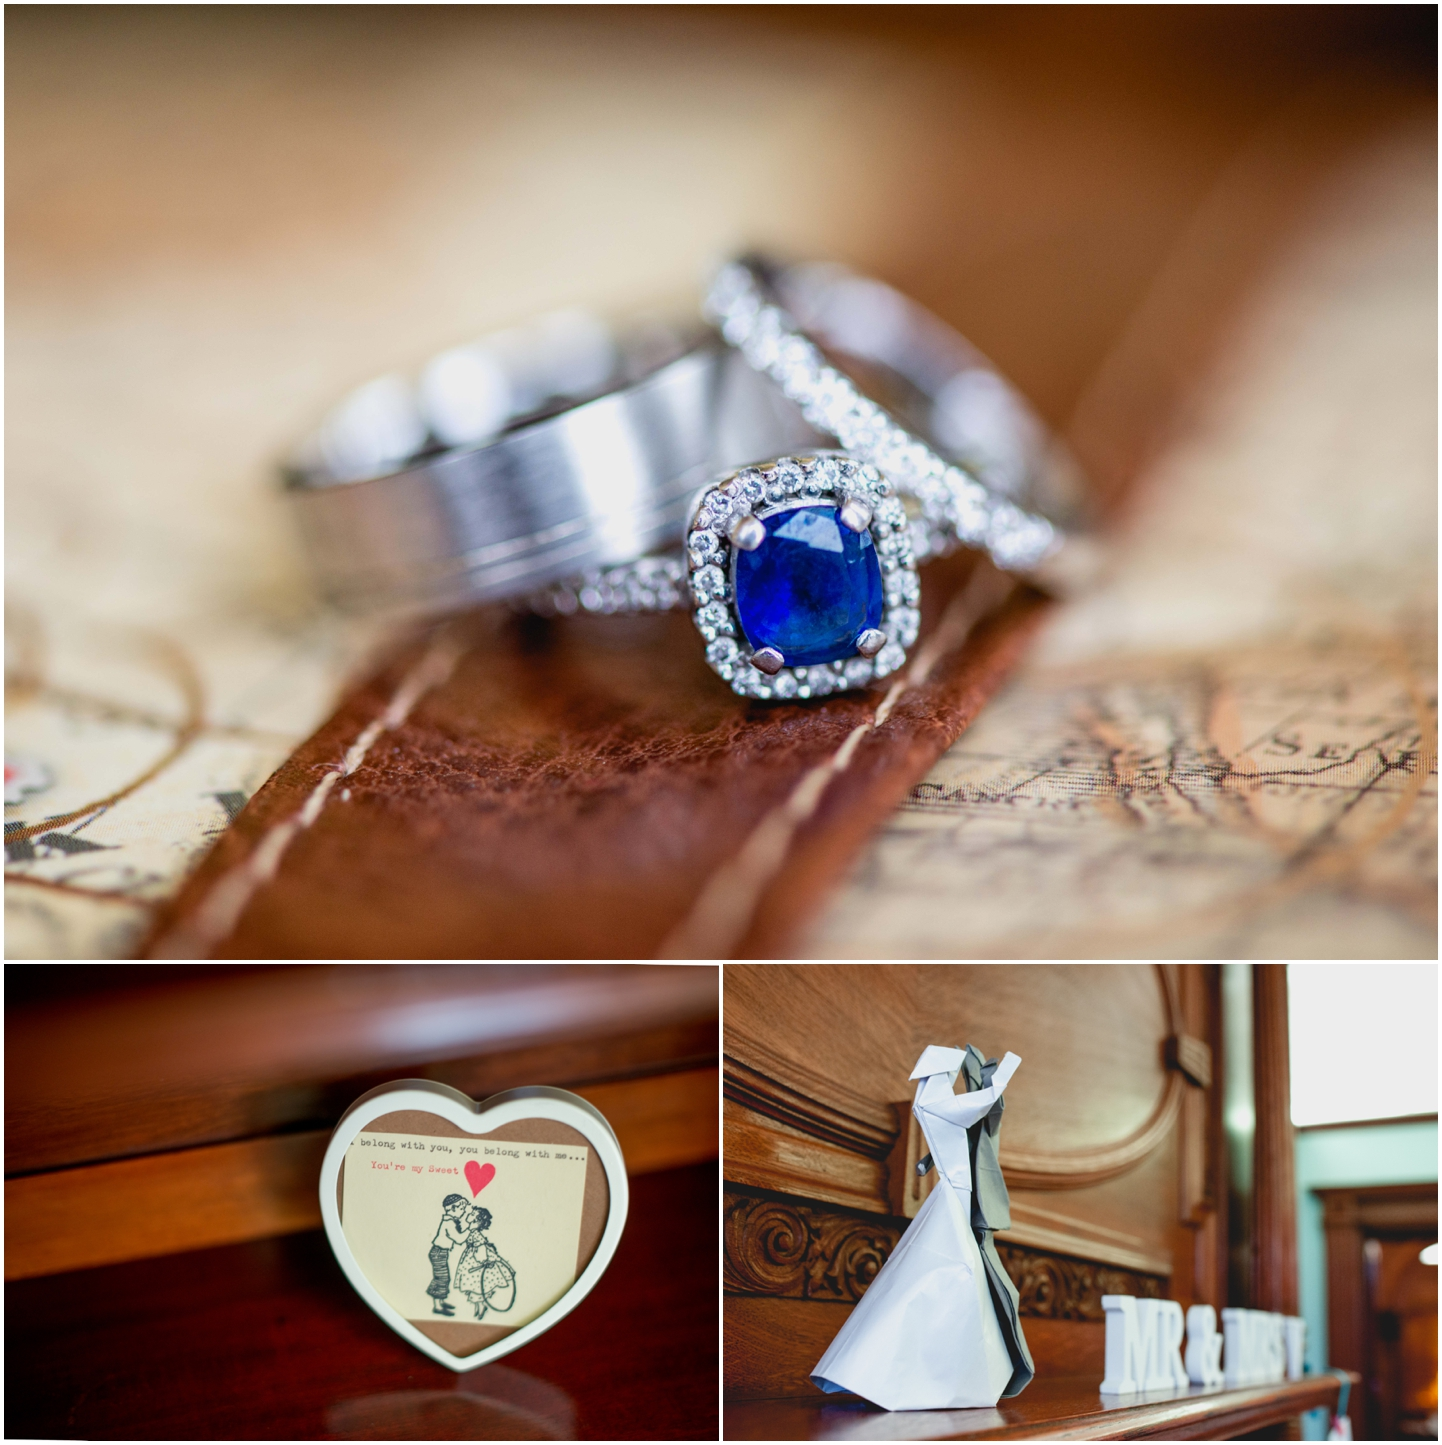 Pendrell Hall Wedding Photography by Lisa Carpenter Photography, West Midlands photographer, rings